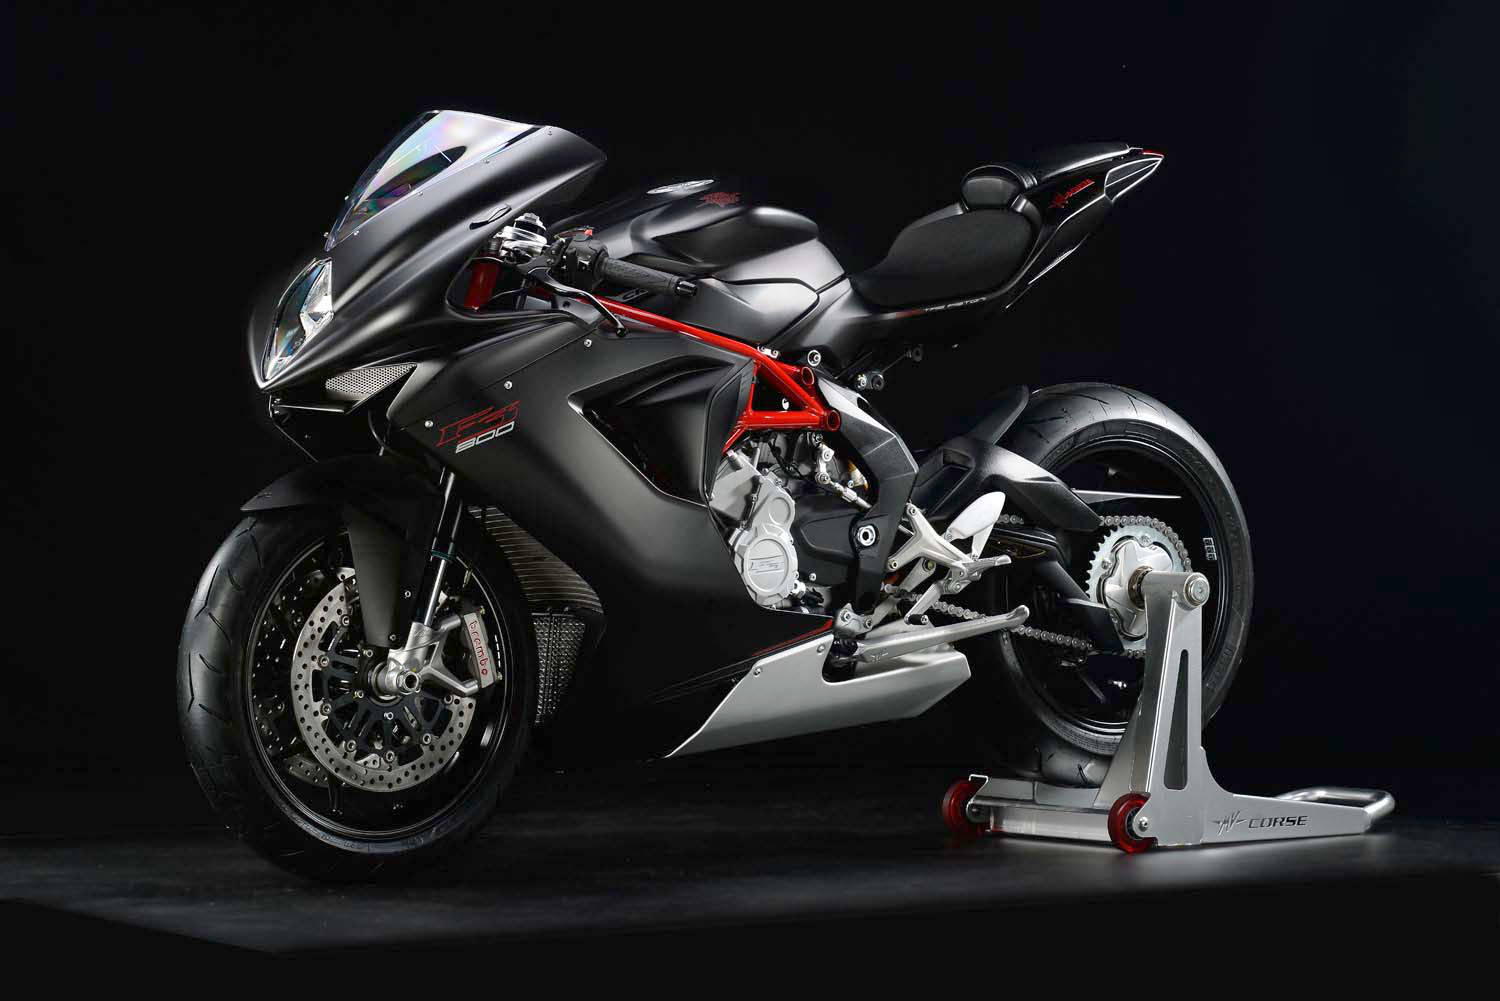 mv agusta introduces f3 800 claims middleweight agility. Black Bedroom Furniture Sets. Home Design Ideas